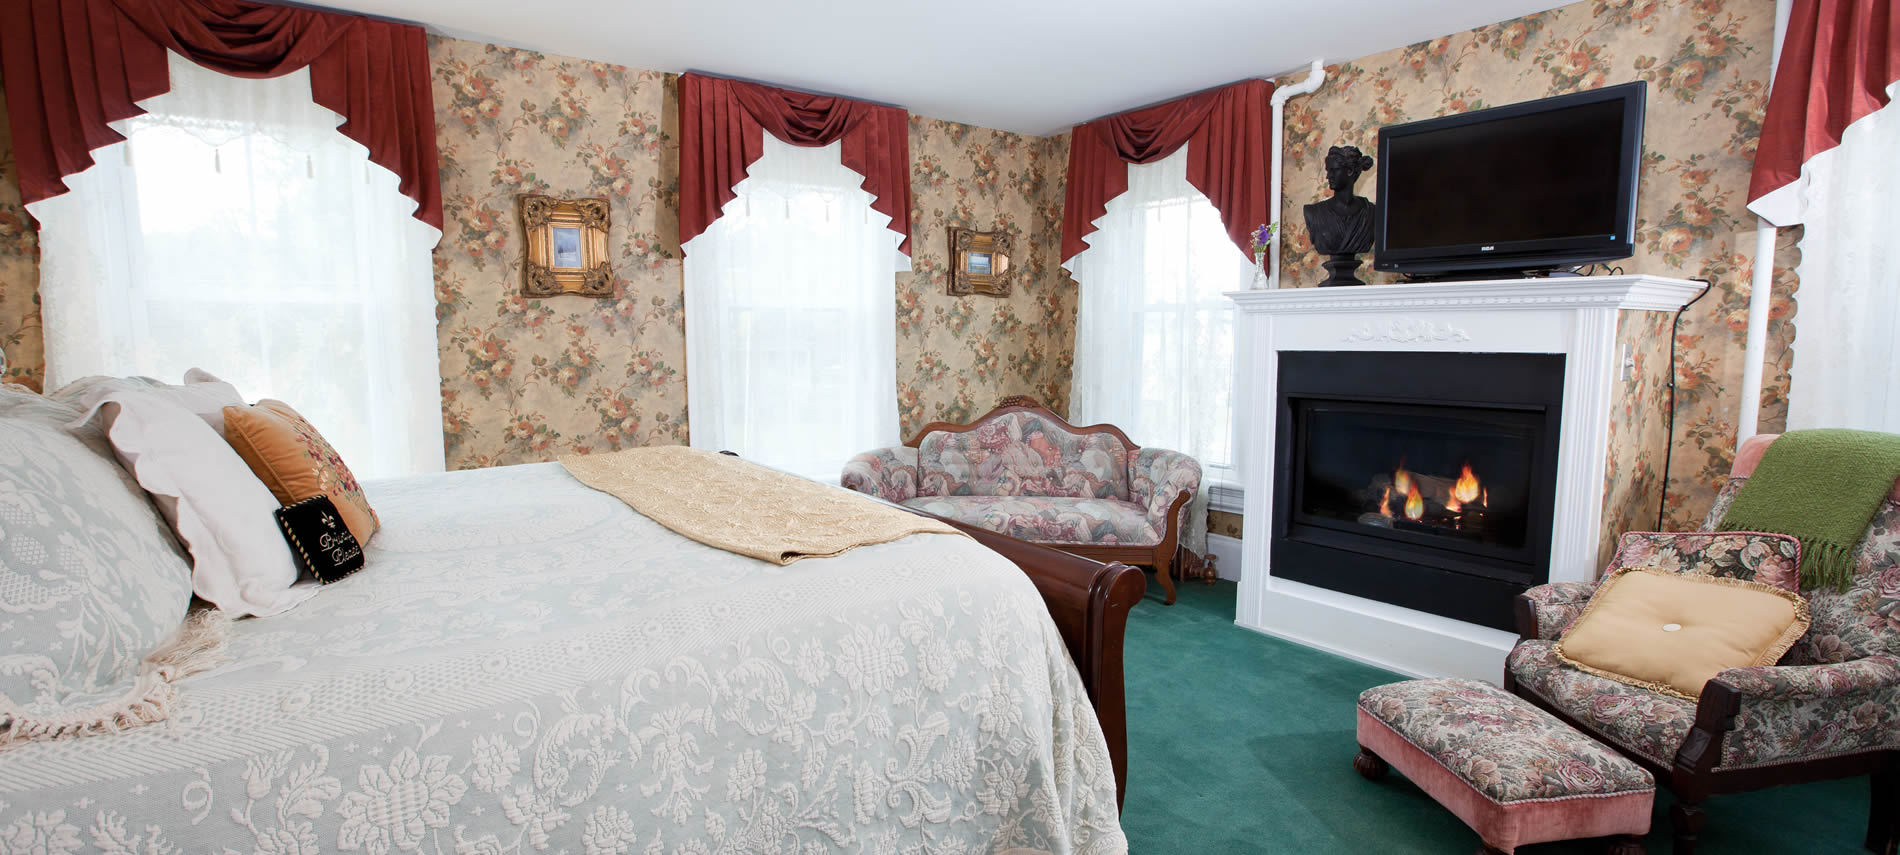 Princess Alice guest room, floral wallpaper, teal green carpet, fireplace, TV, upholstered furniture and several windows